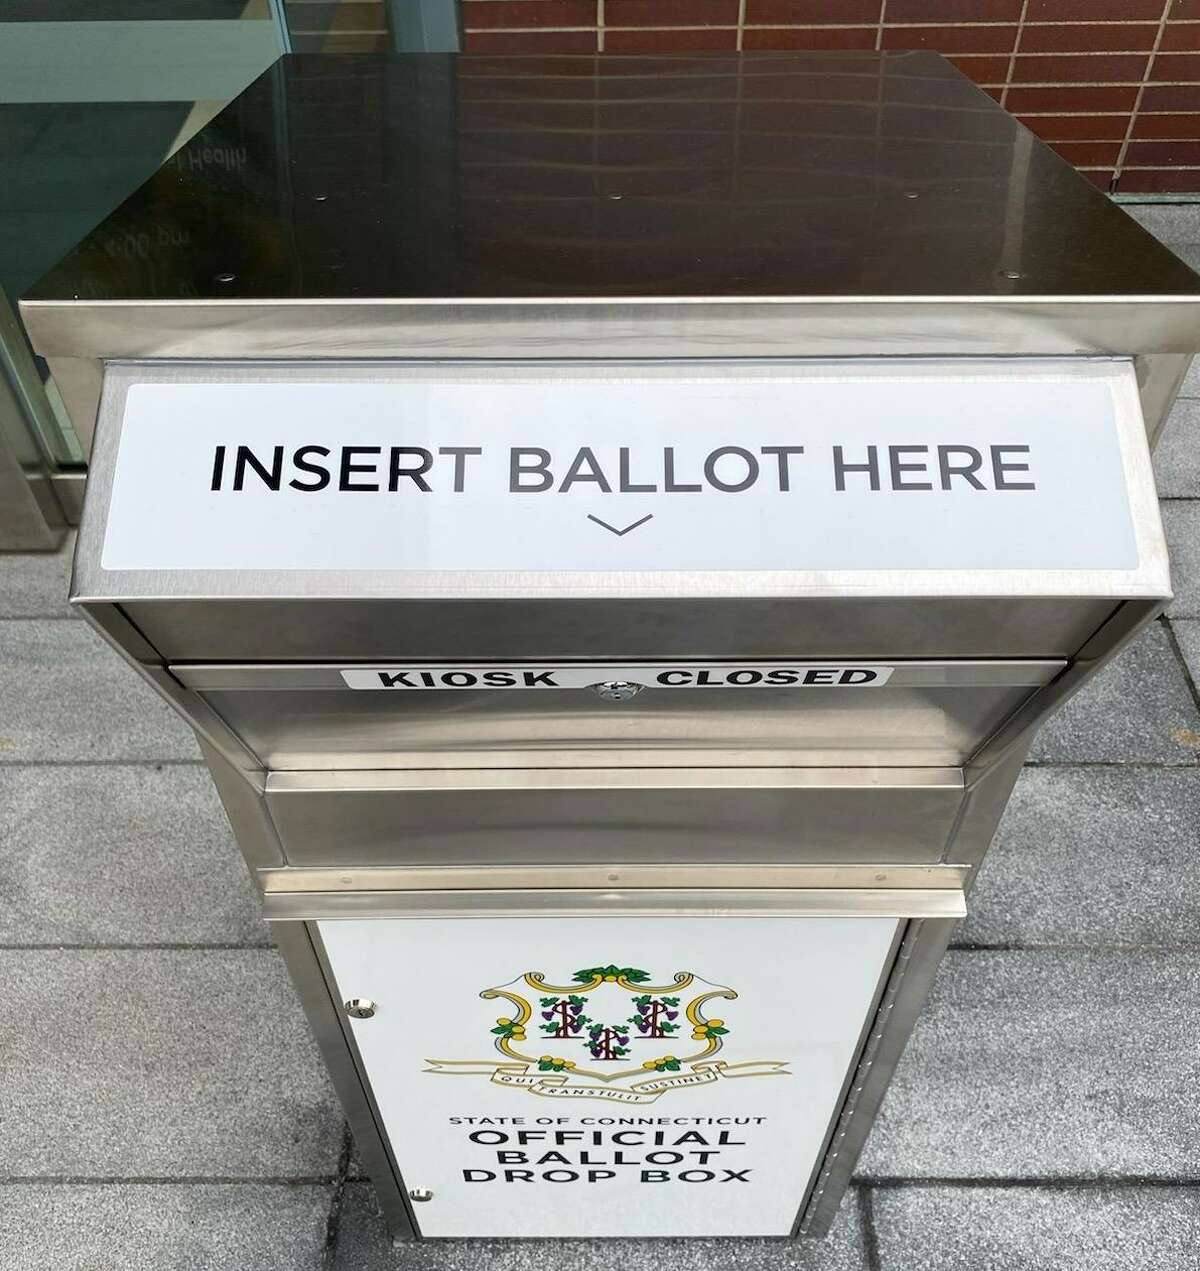 A drop box outside New Canaan Town Hall awaits applications for absentee ballots for the Nov. 3 election, as well as the completed ballots themselves.